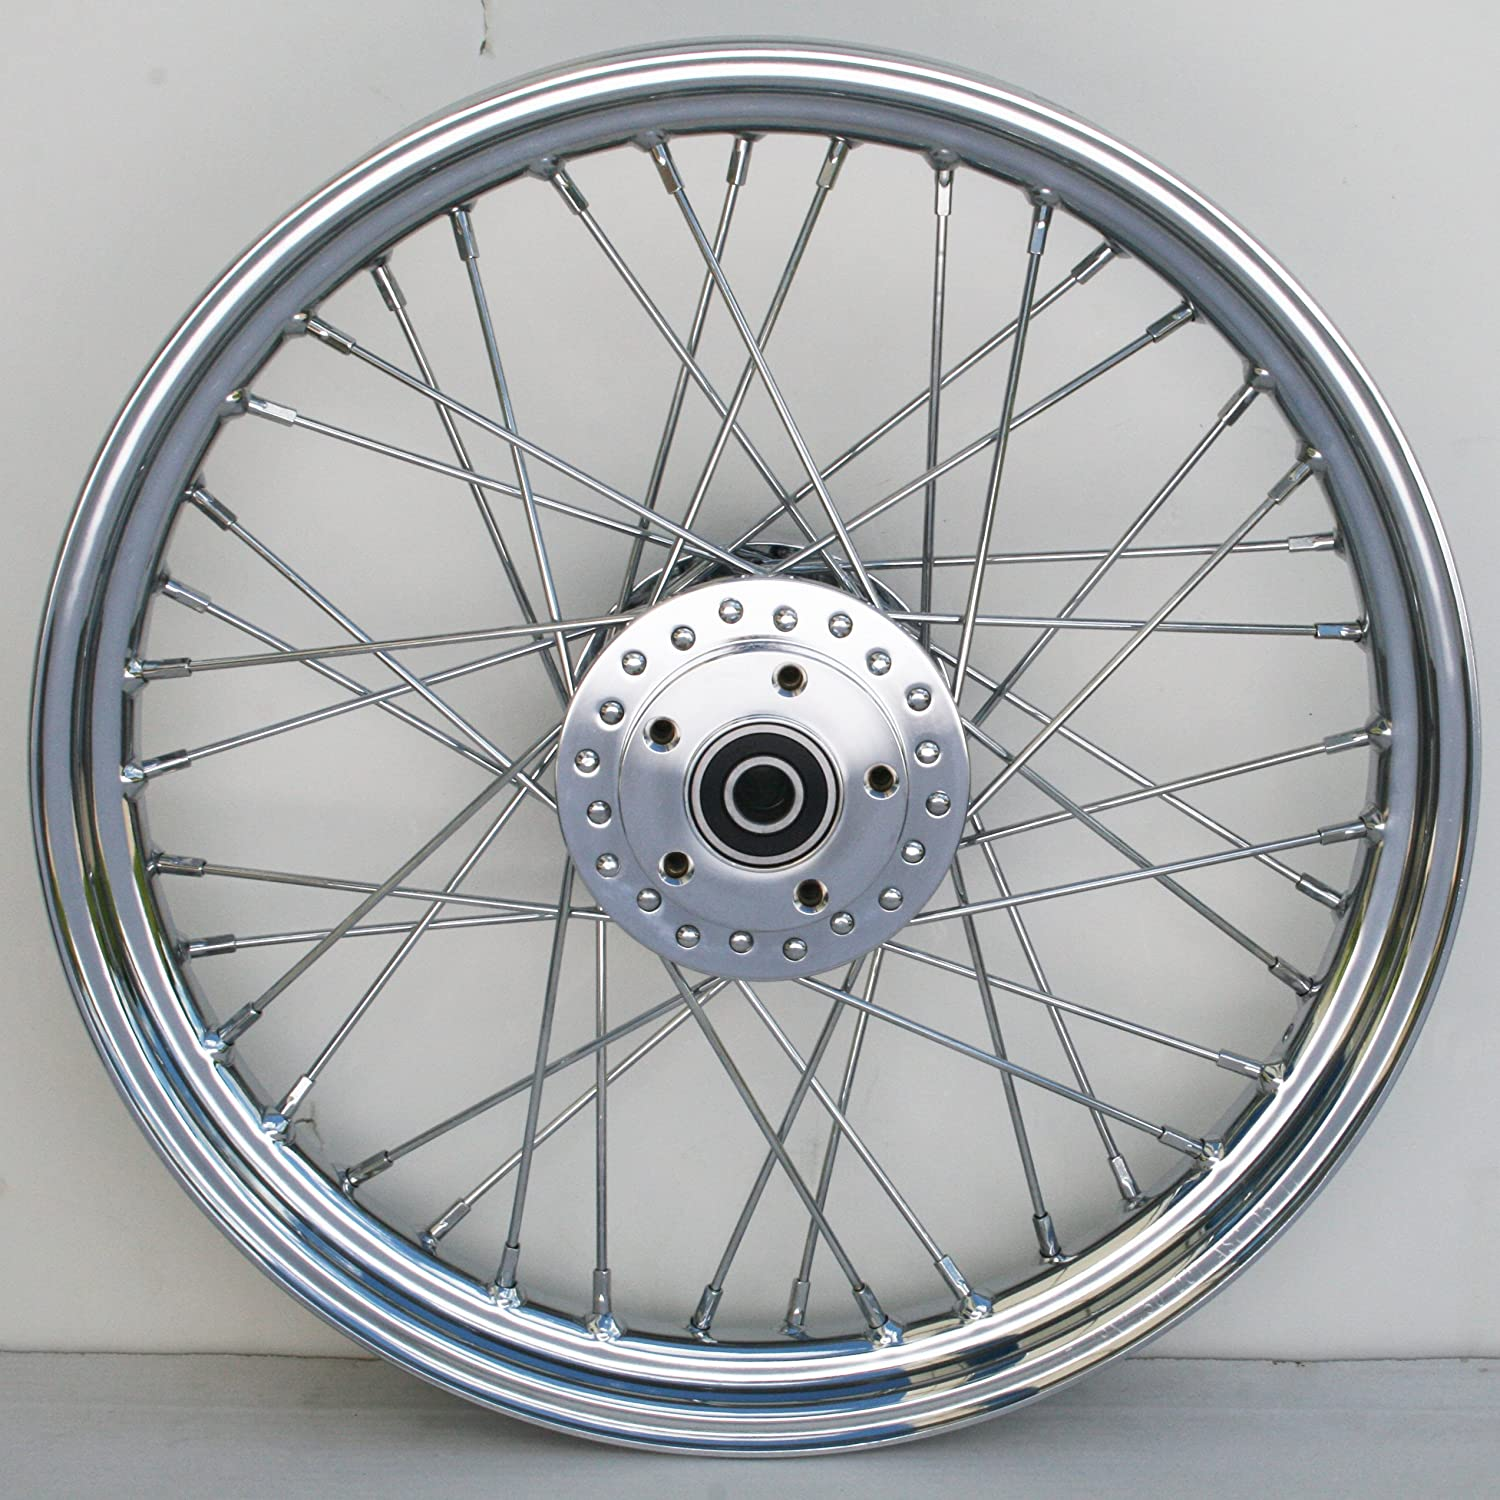 Ultima Complete Chrome 40 Spoke Front Wheel 19 x 2.50 2000 /& Later Models Single or Dual Disc 36-370